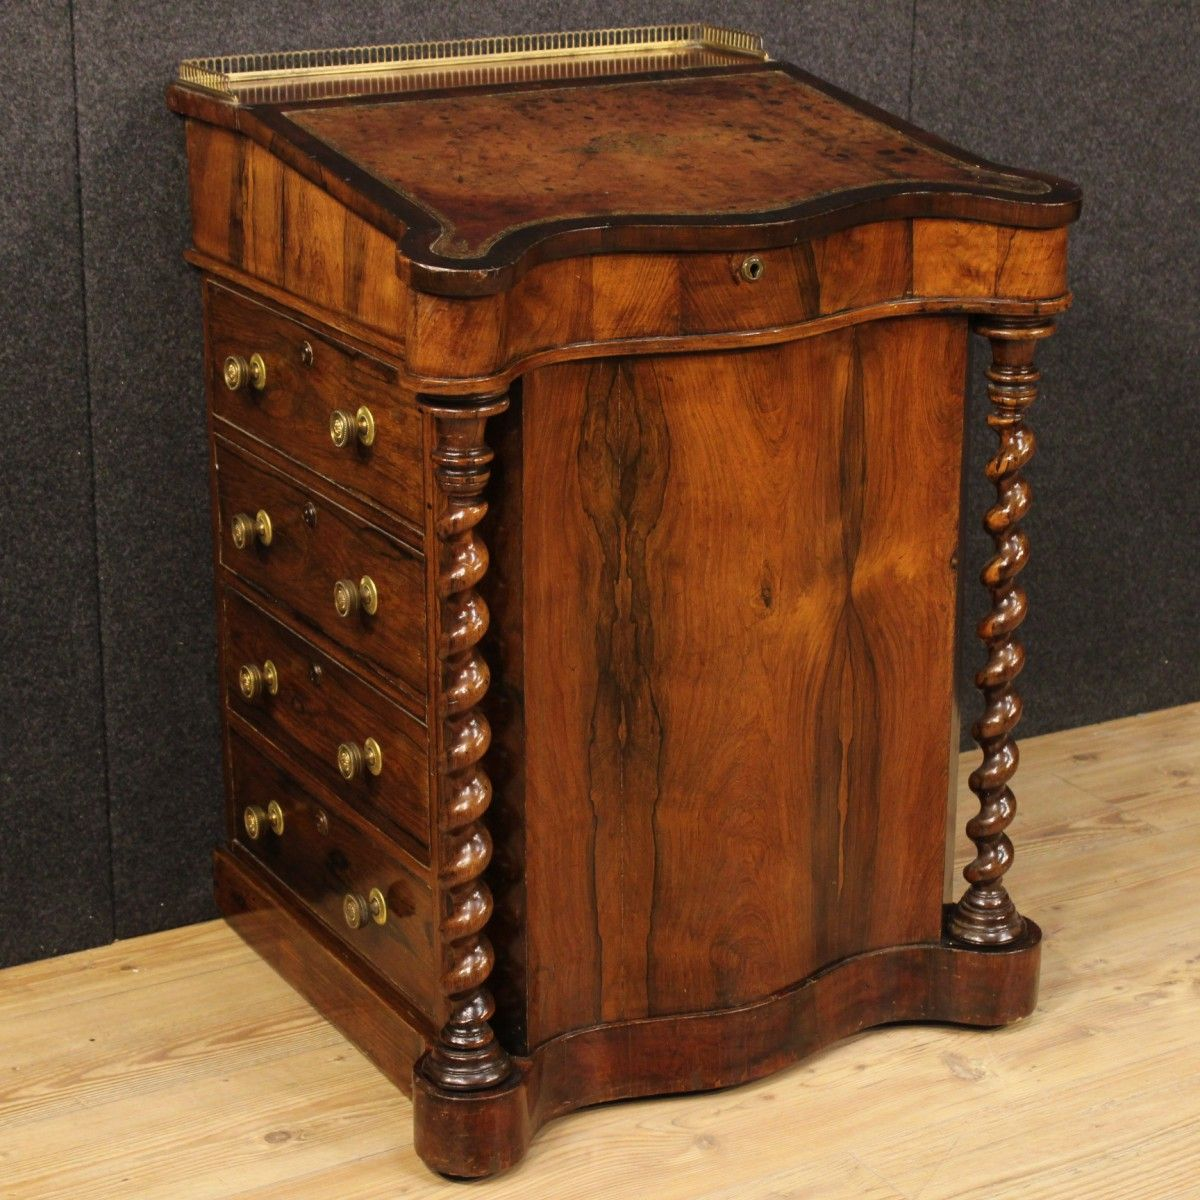 Price: 1600u20ac Elegant English Davenport Of The 19th Century. Furniture Made  By Palisander